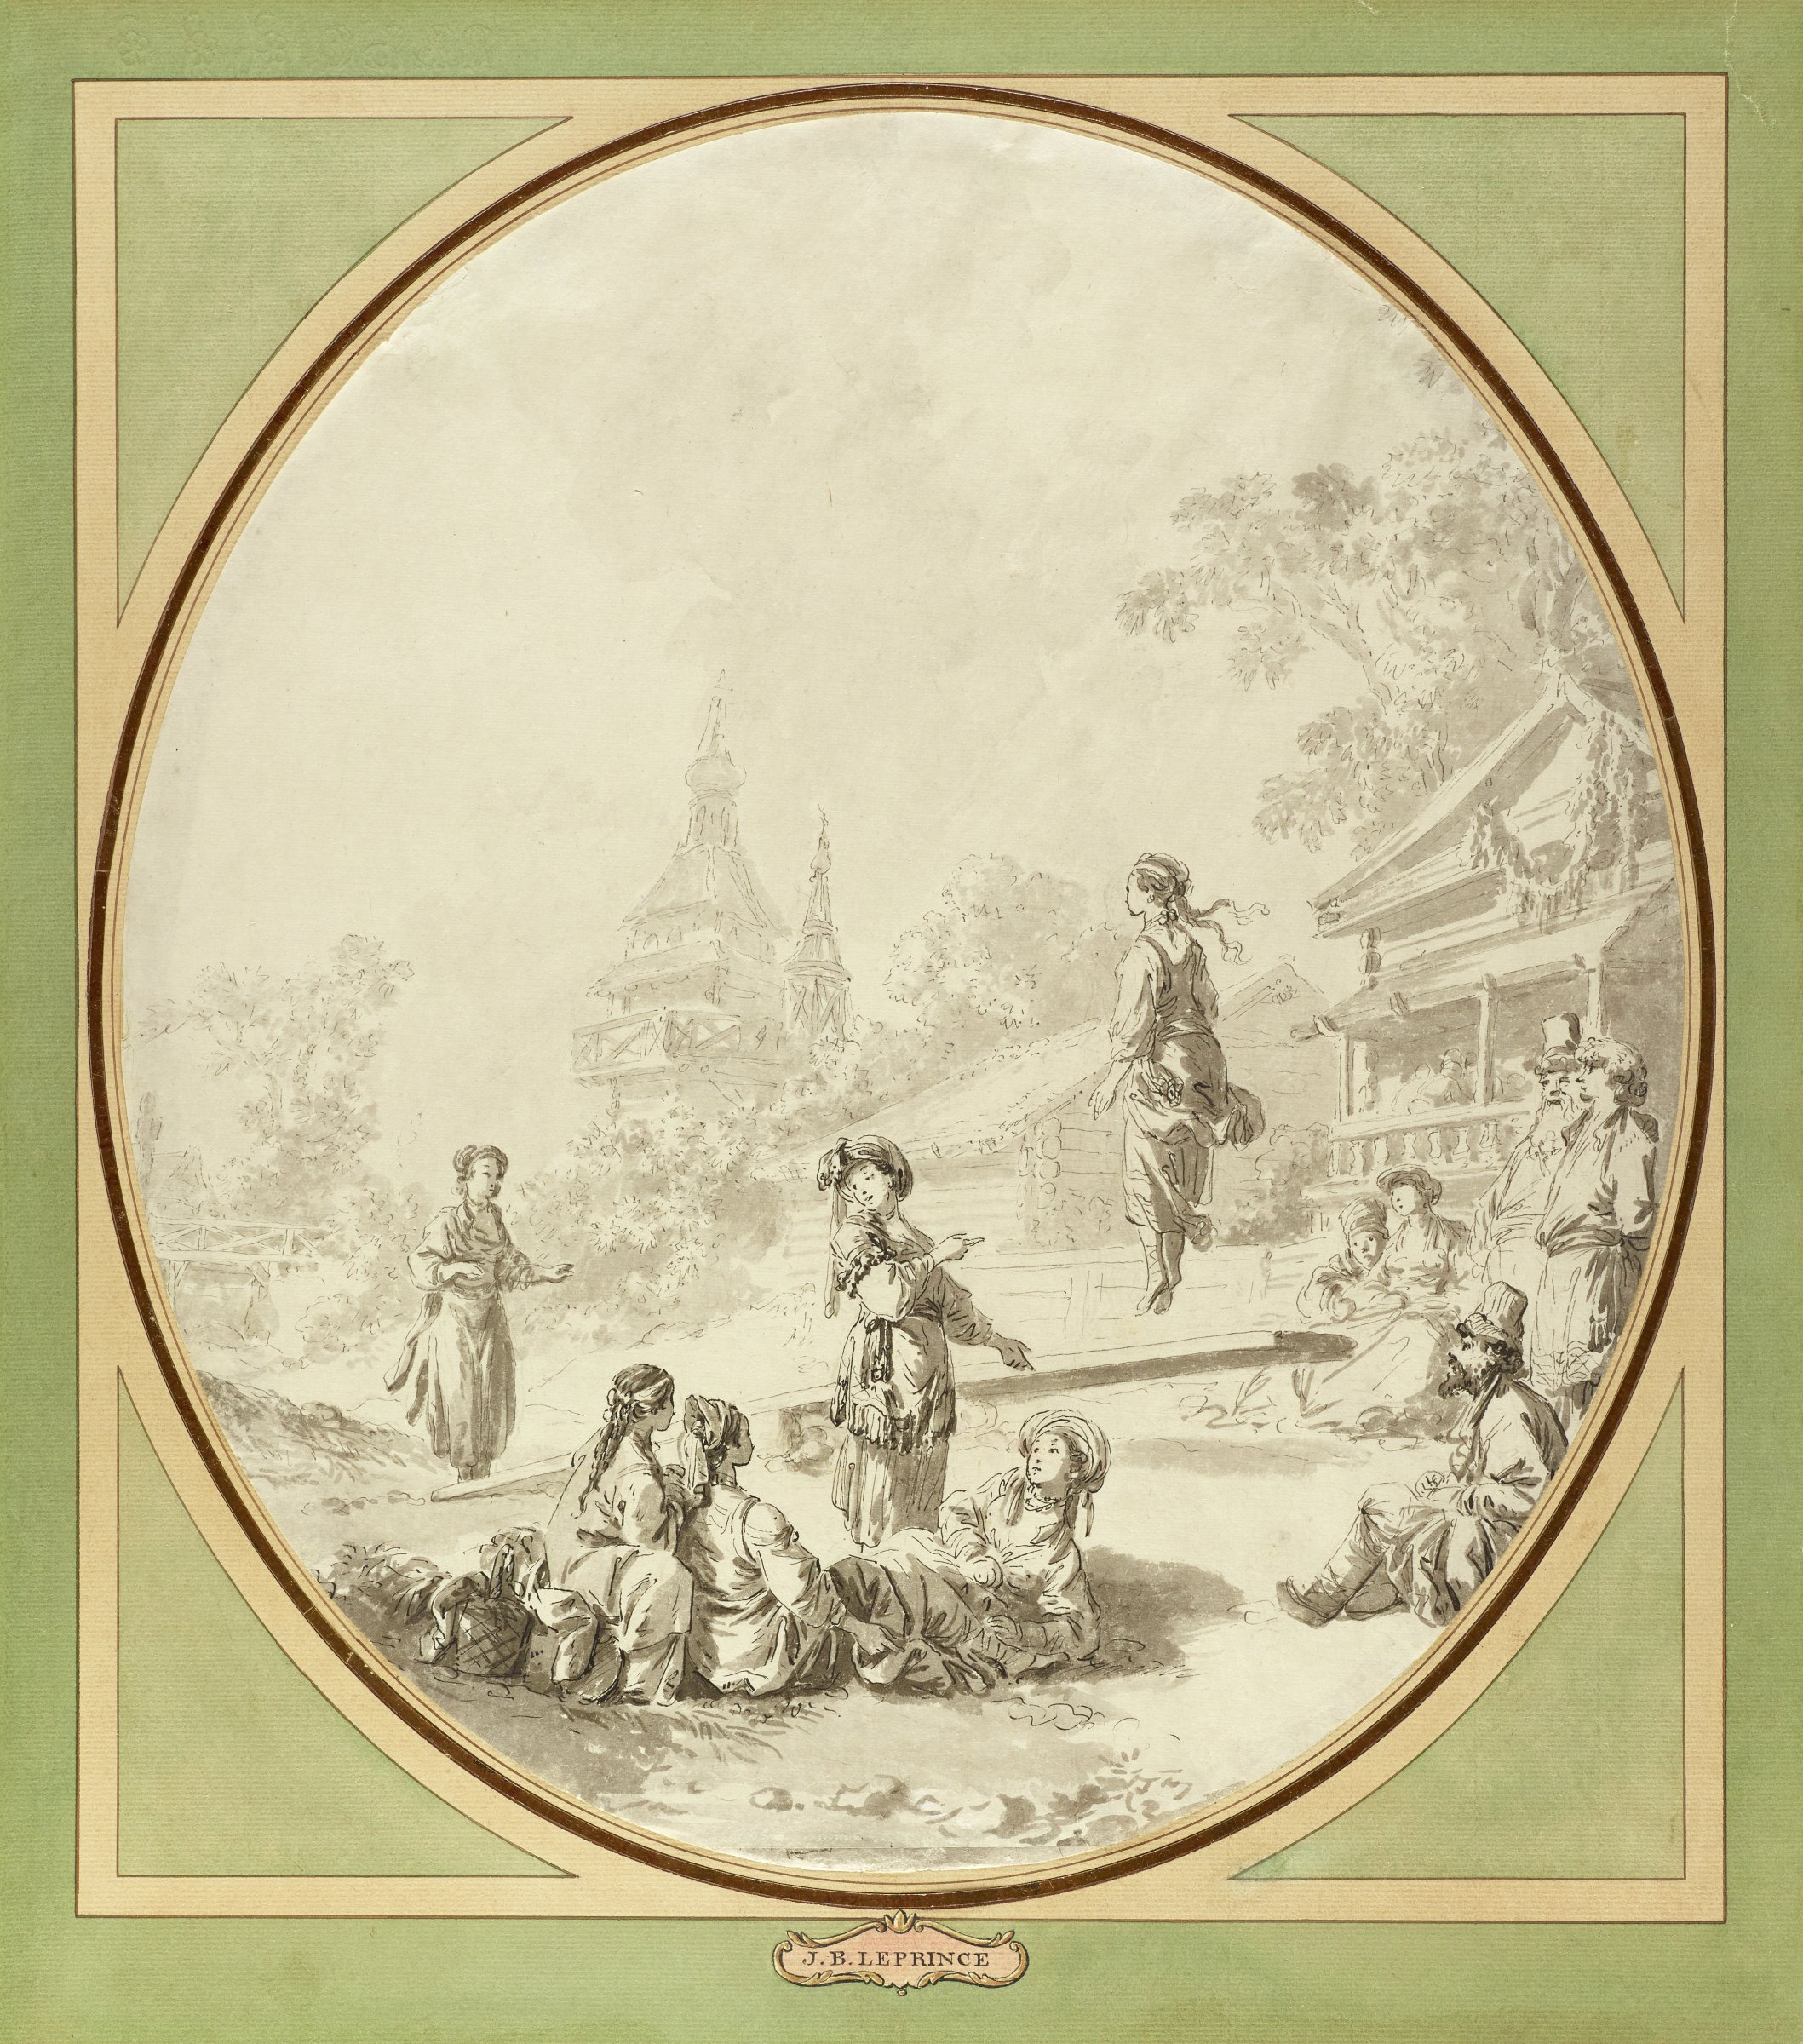 Multiple figures gather around to watch two women play on a seesaw. The central figure looks to a group of women sitting in the grass as she points to the woman on the seesaw that is suspended in the air.